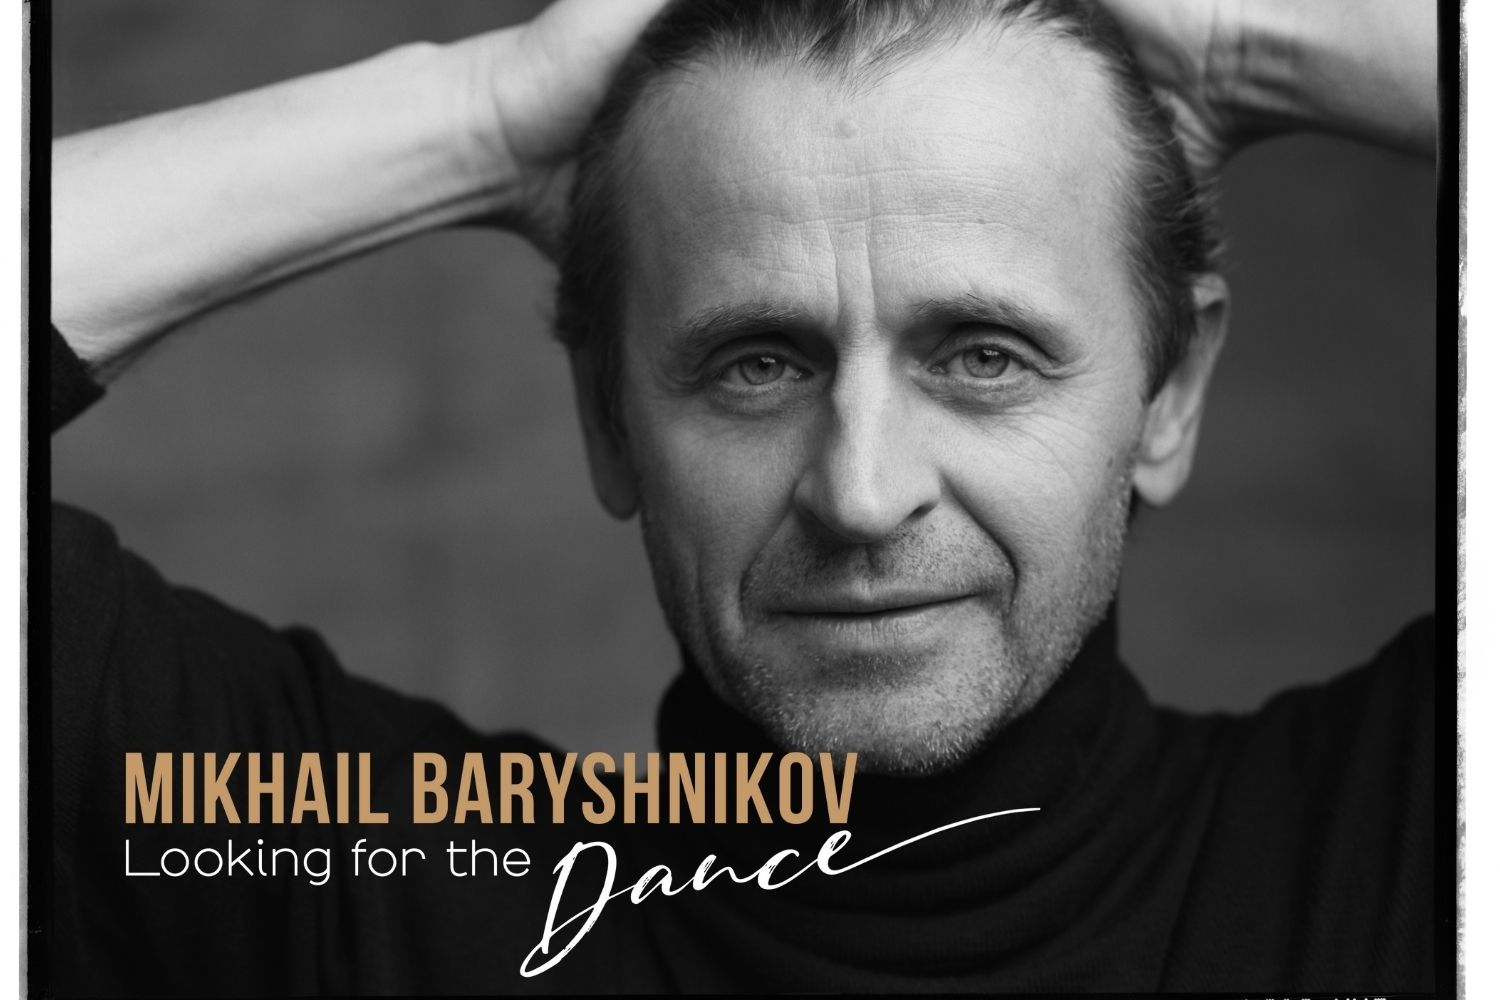 LOOKING FOR THE DANCE: The photography exhibit of Mikhail Baryshnikov